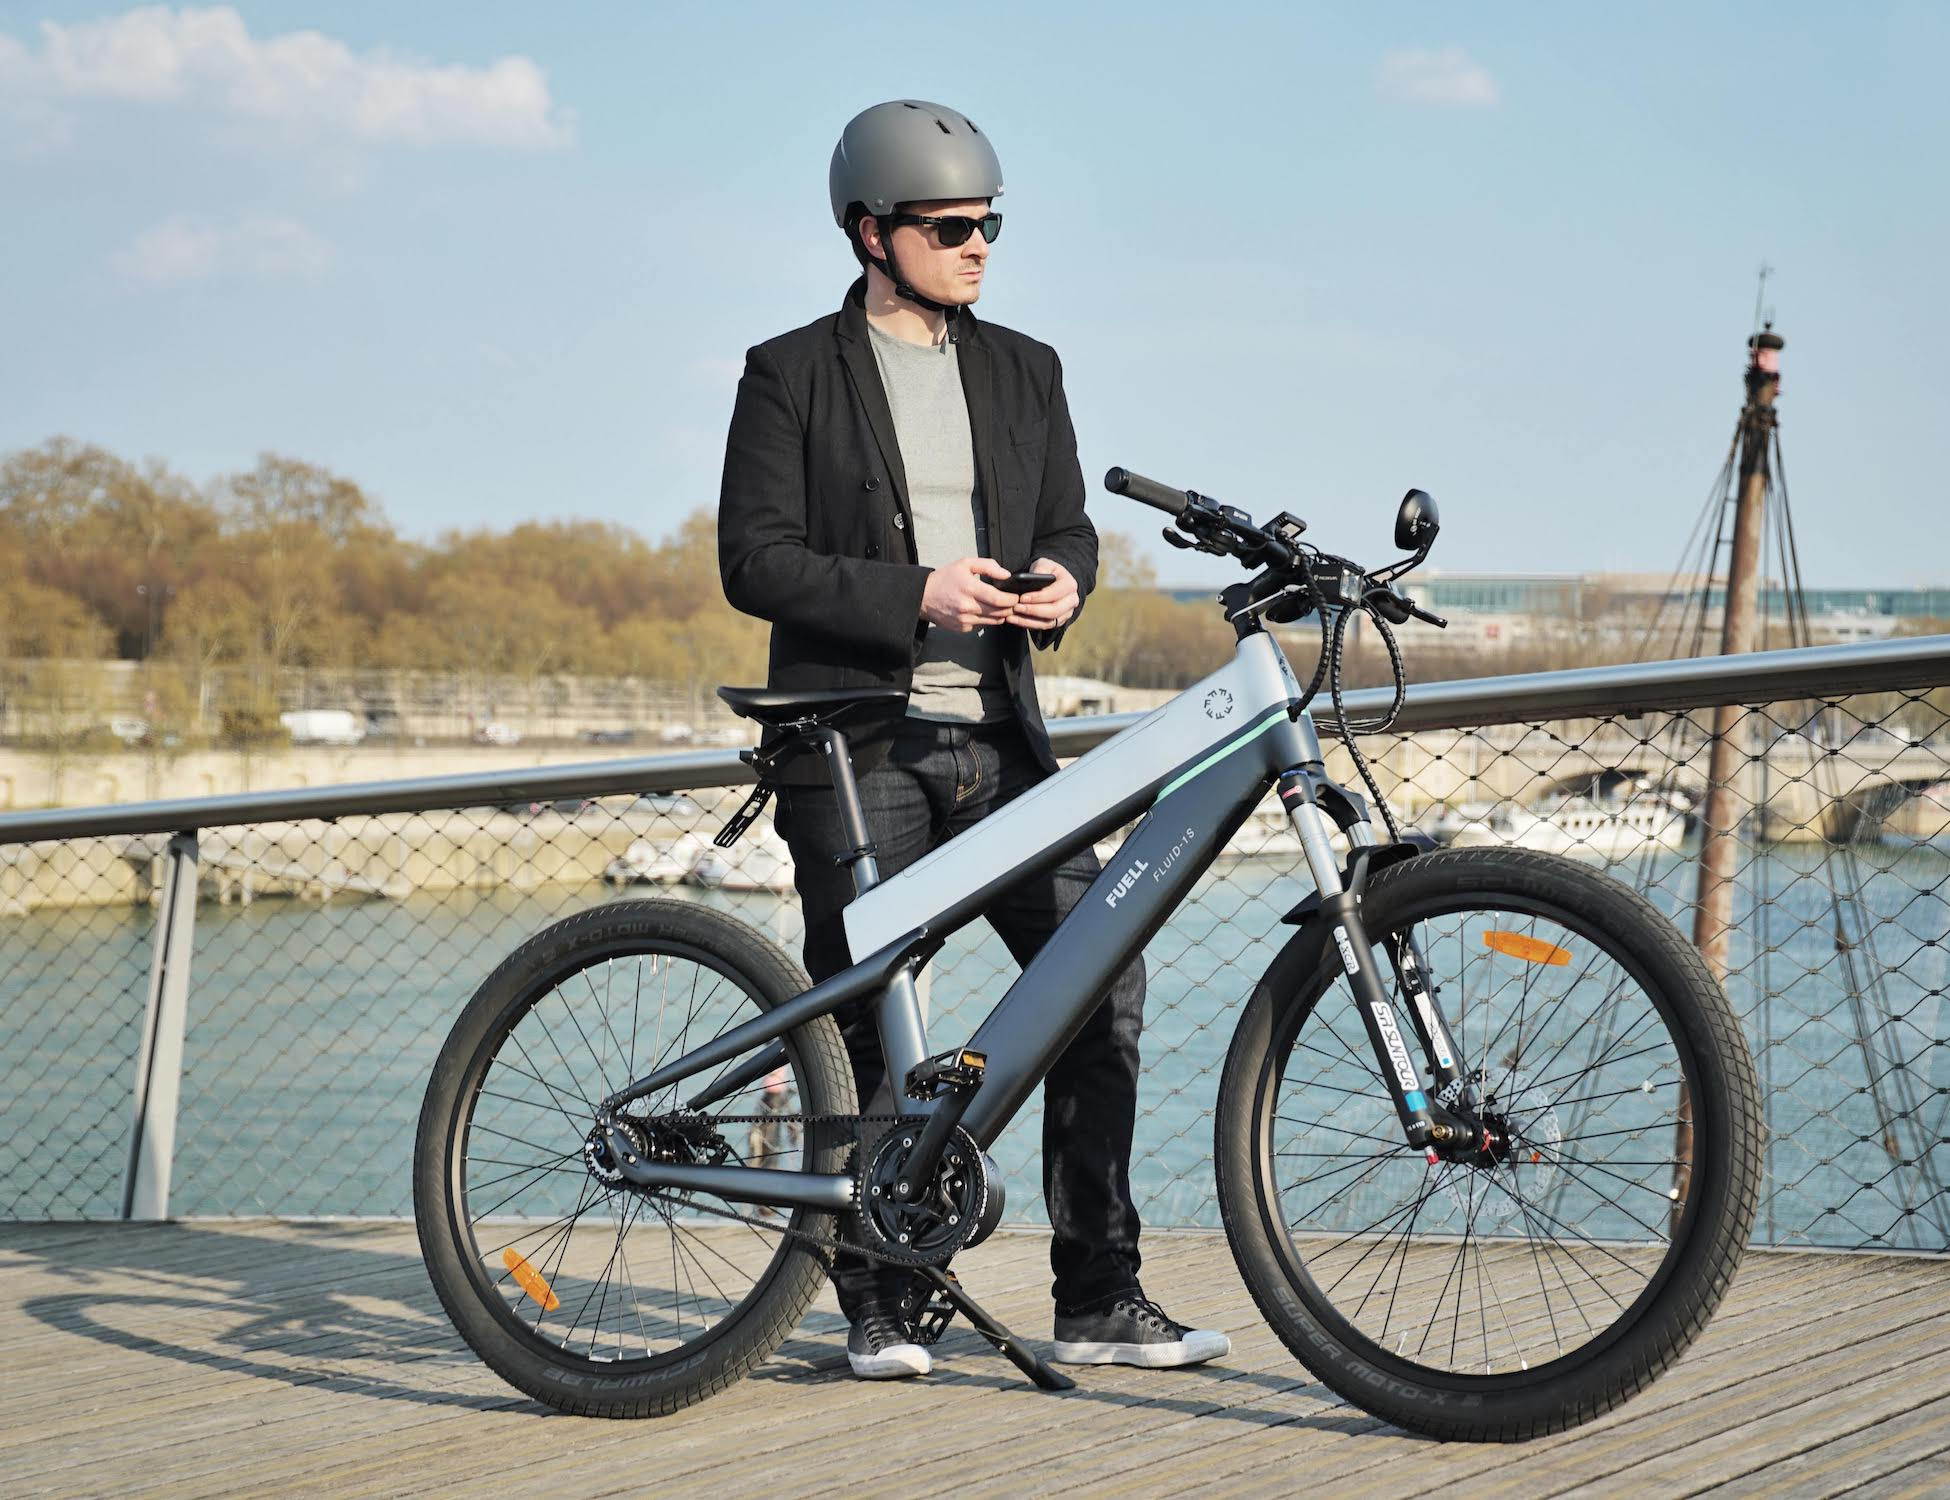 FUELL Fluid Long-Range Commuter E-Bike comes with large two batteries